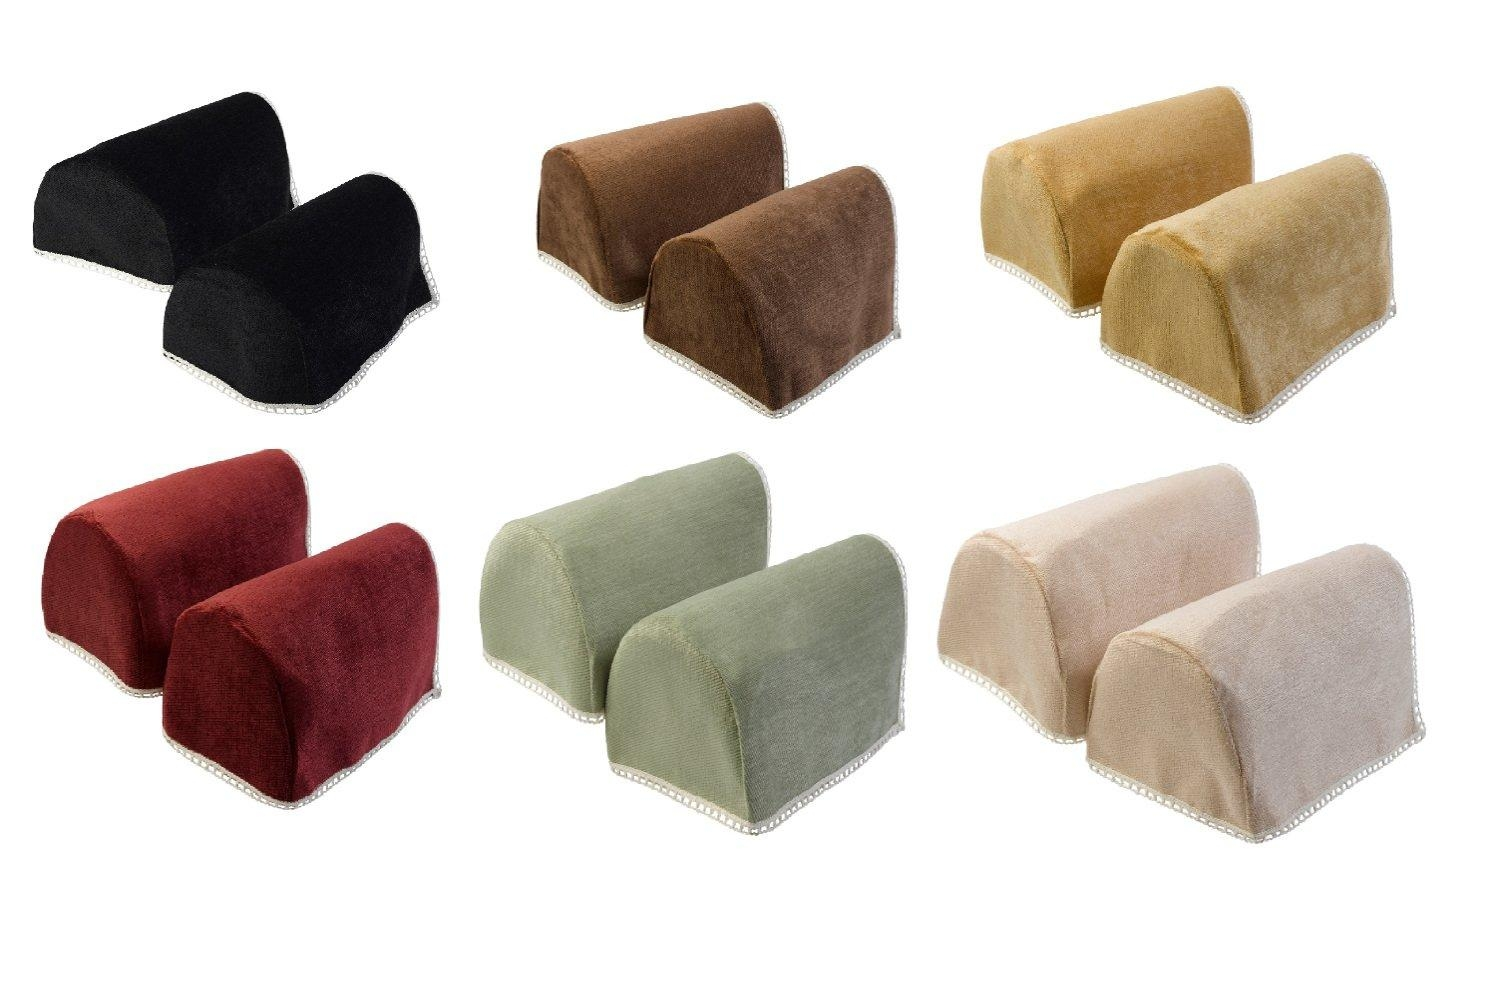 Chair Arm Cover | Home Design Architecture Within Sofa Arm Caps (Image 4 of 20)